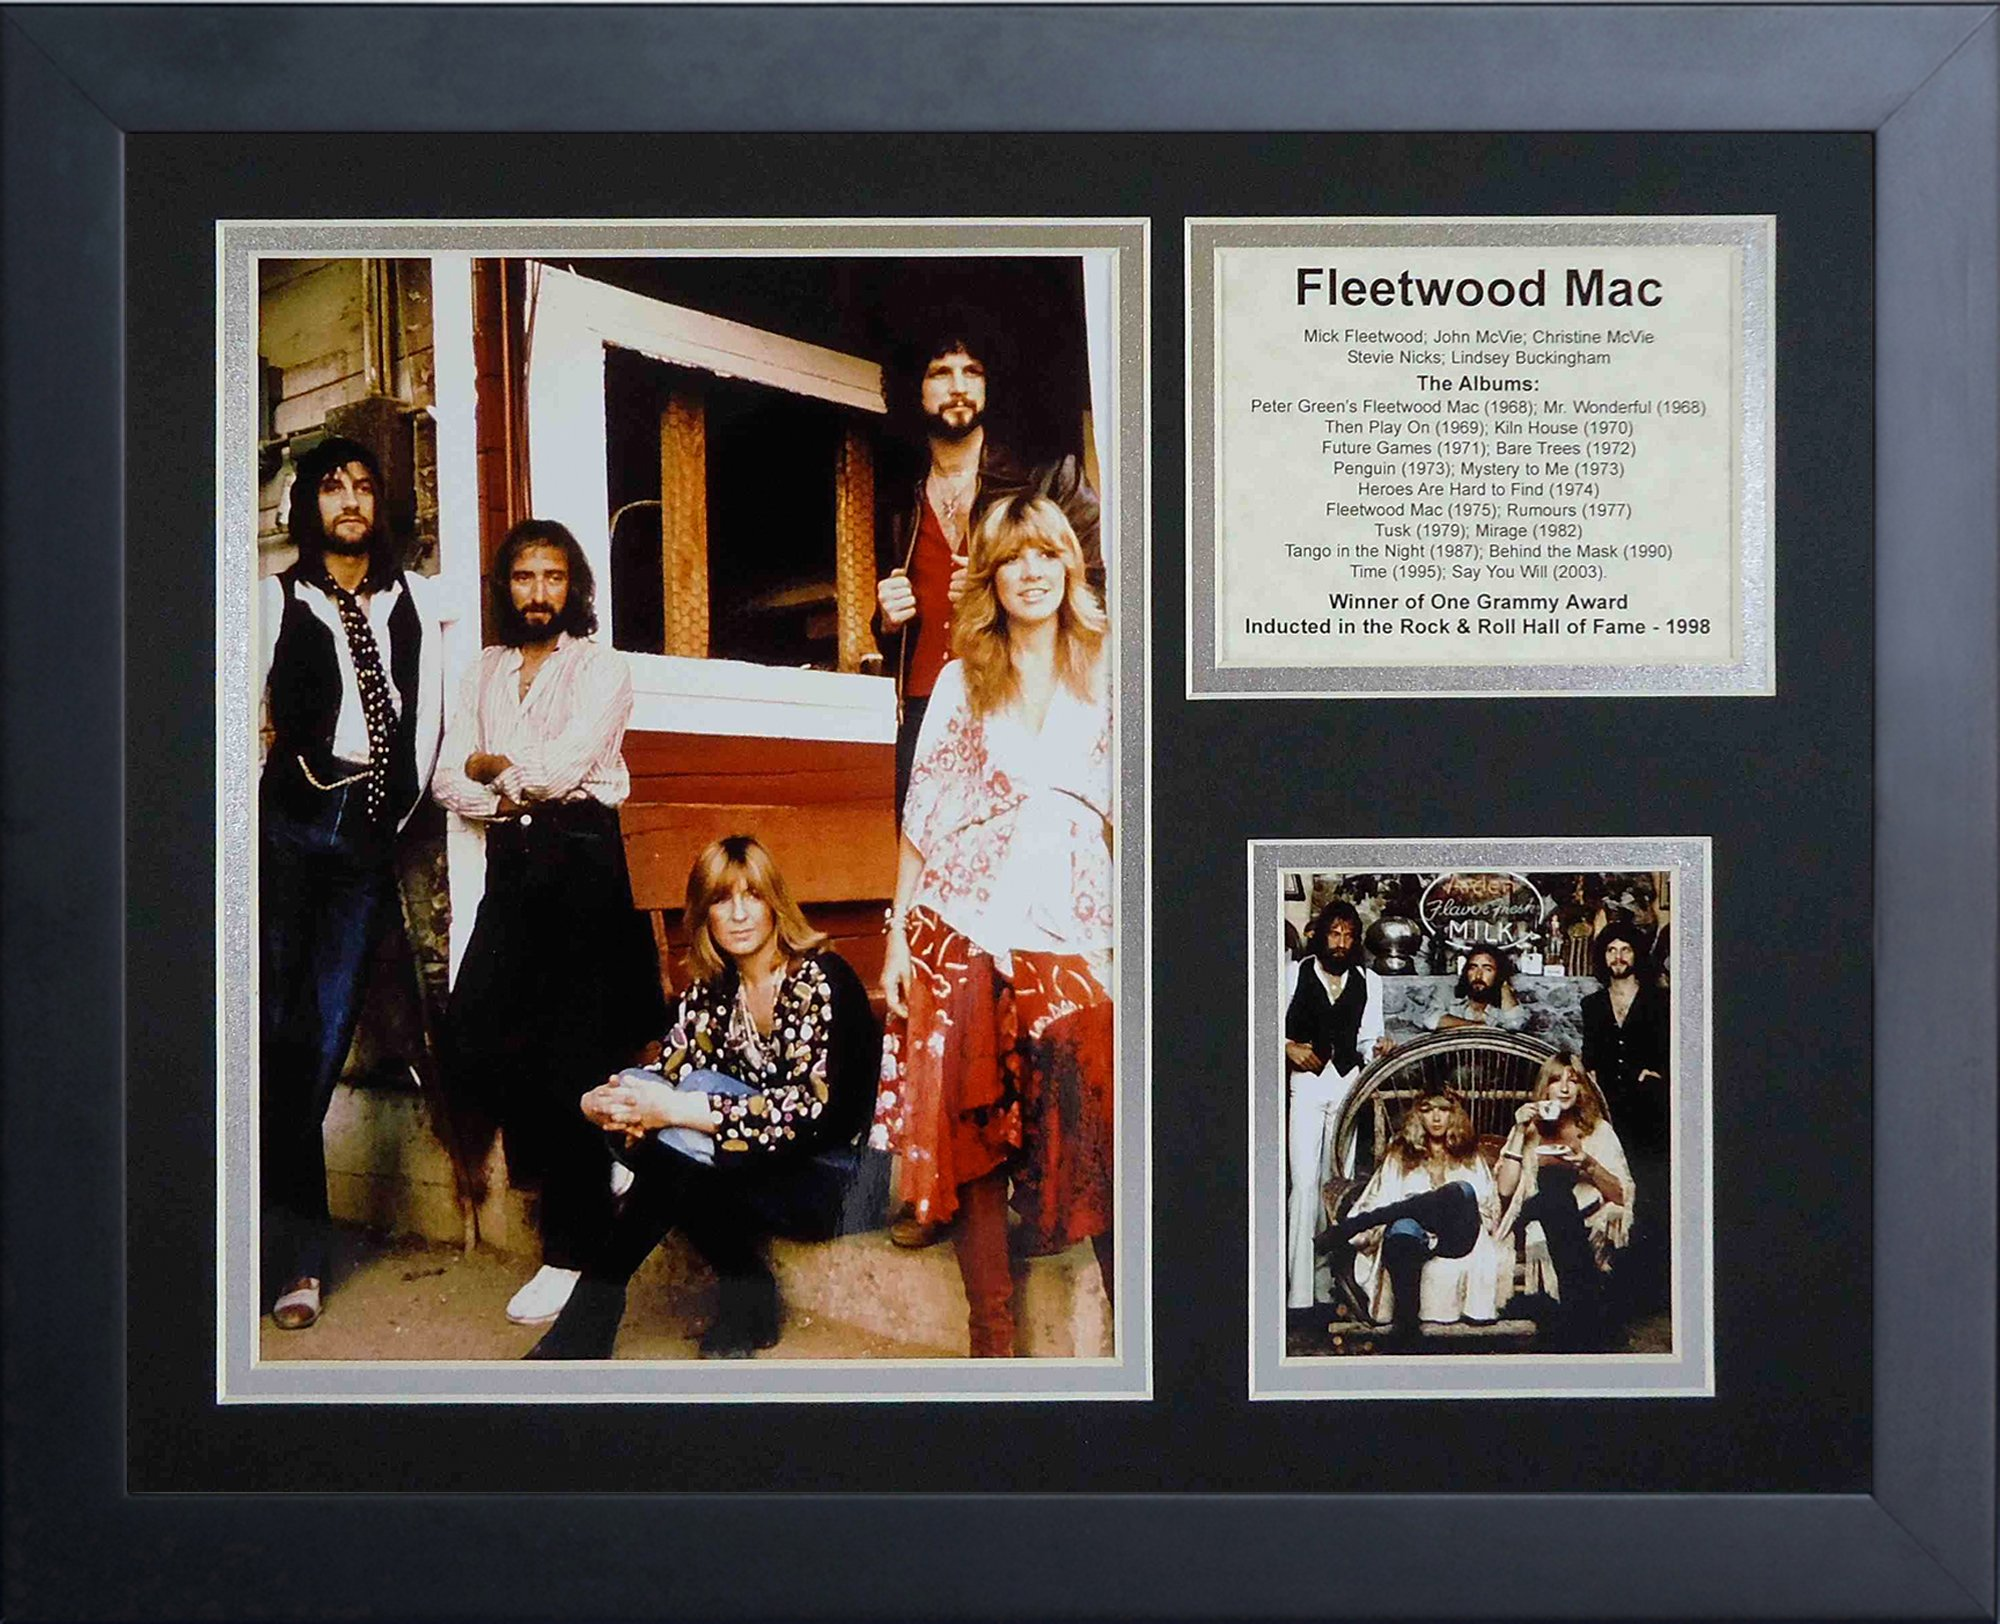 Legends Never Die ''Fleetwood Mac Framed Photo Collage, 11 x 14-Inch by Legends Never Die